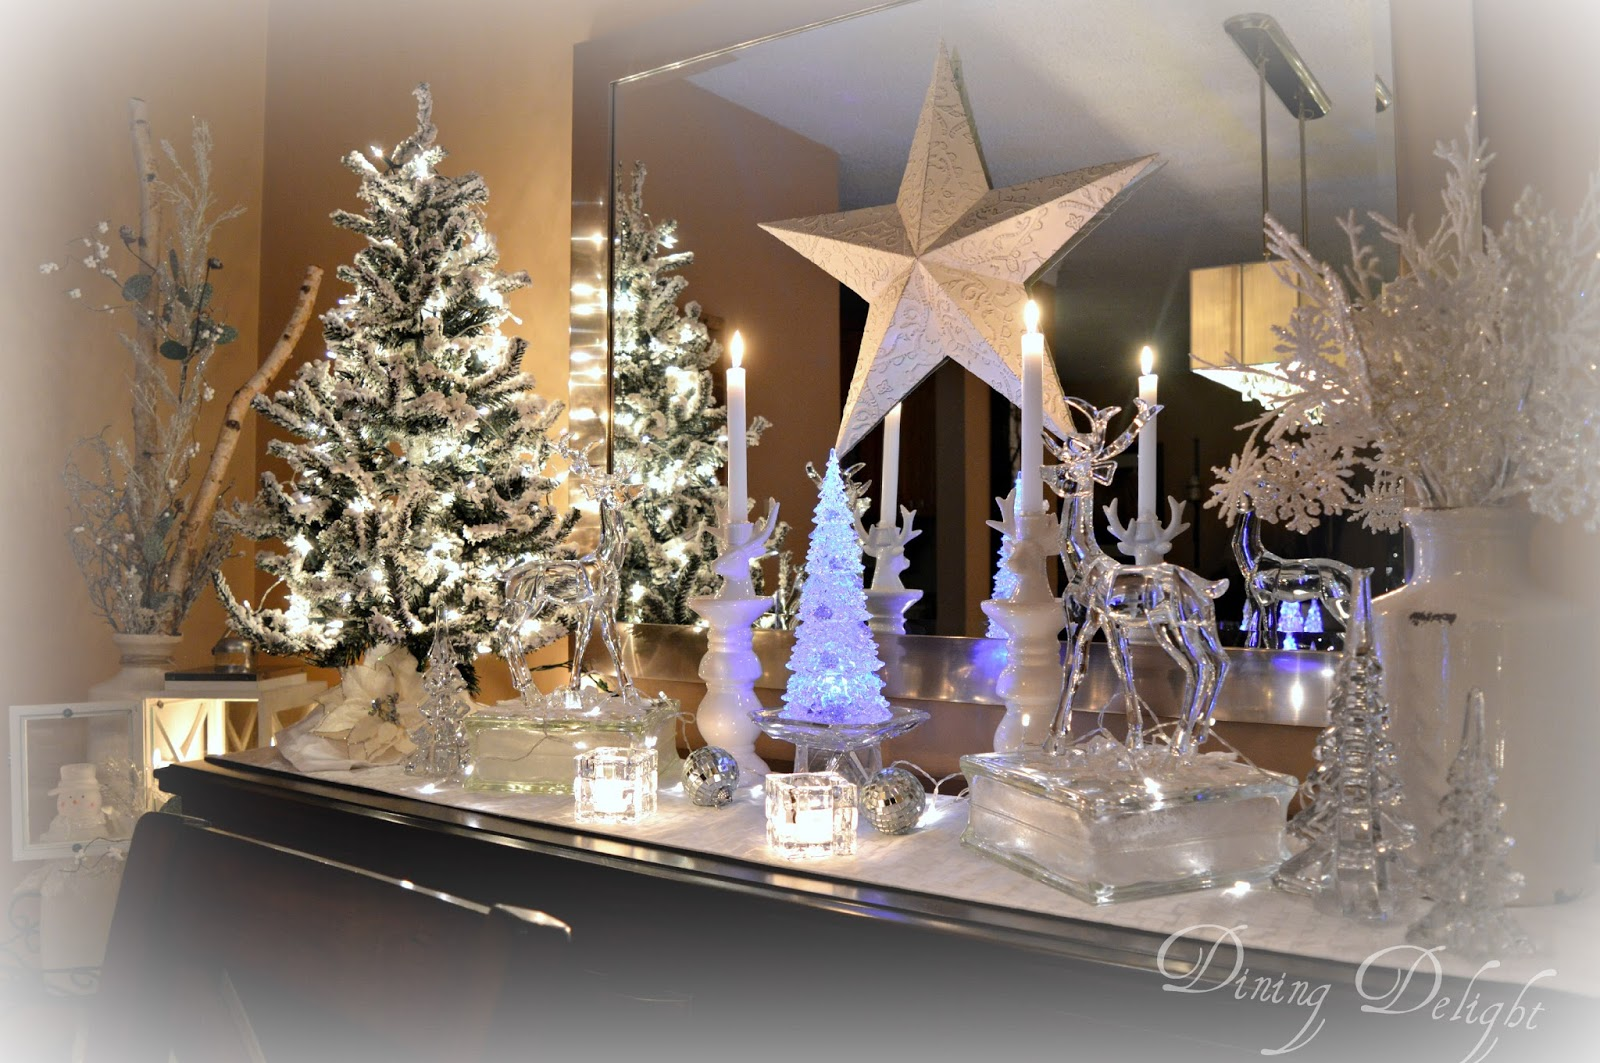 Dining delight christmas decor inspiration for B q christmas decorations